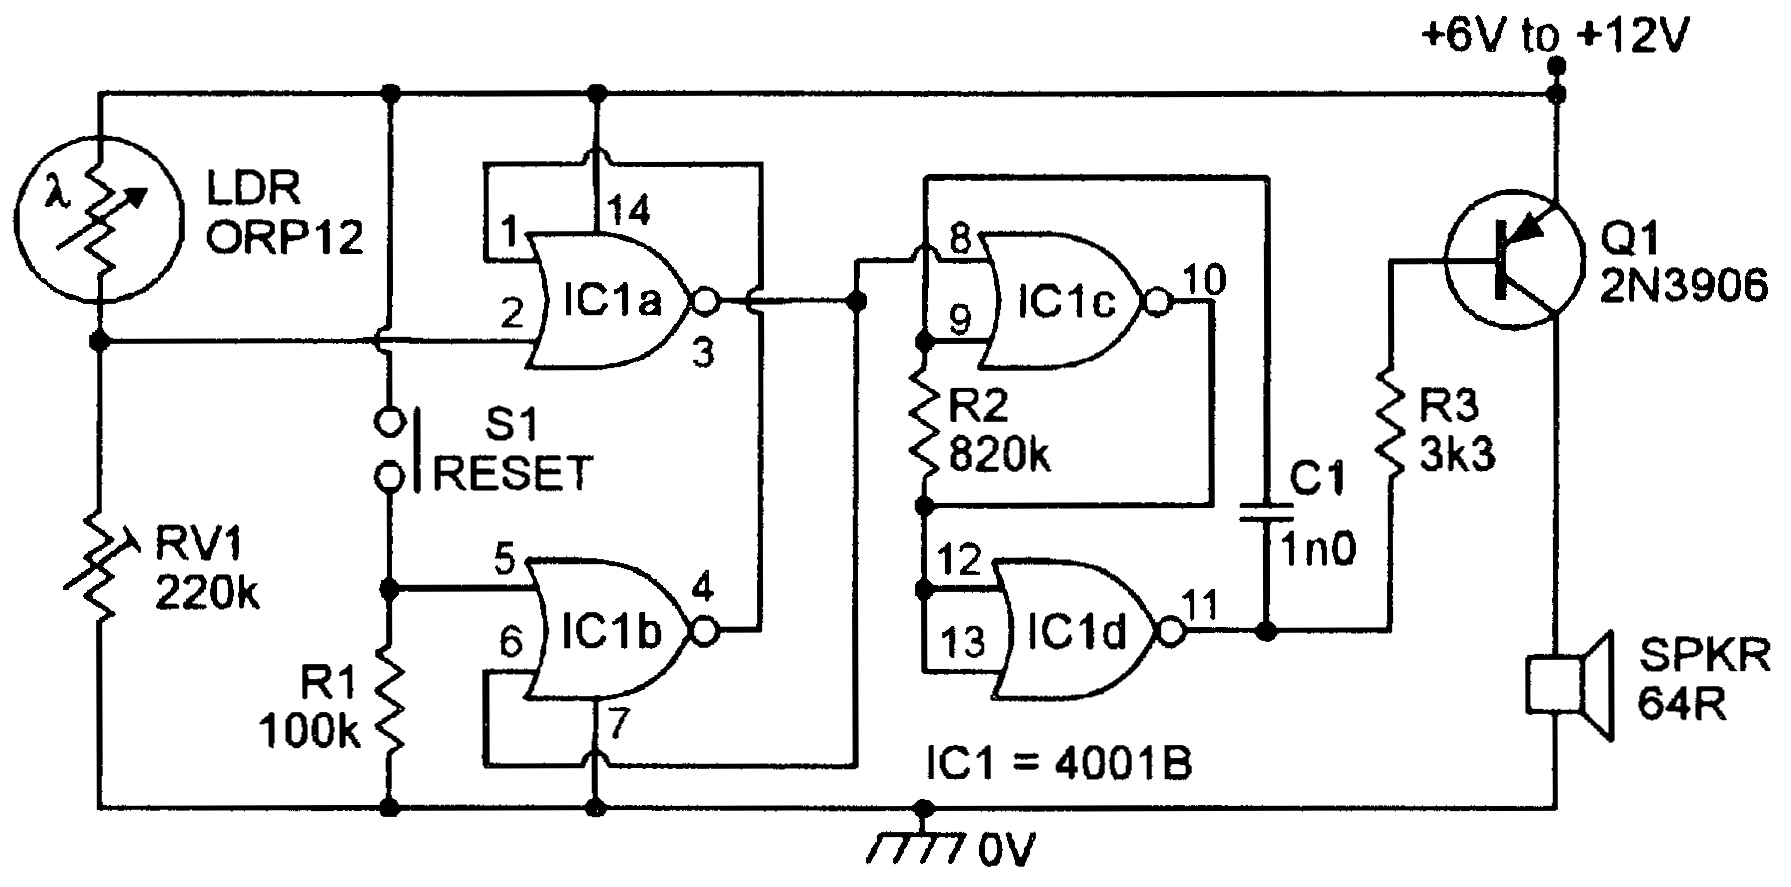 Light Sensitive Circuits Nuts Volts Magazine Precision Receiver Battery Low Voltage Alarm Circuit Diagrams In Practice The Switching Point Of Each Individual 4001b Ic Is Very Stable And Figure 7 Gives Activated